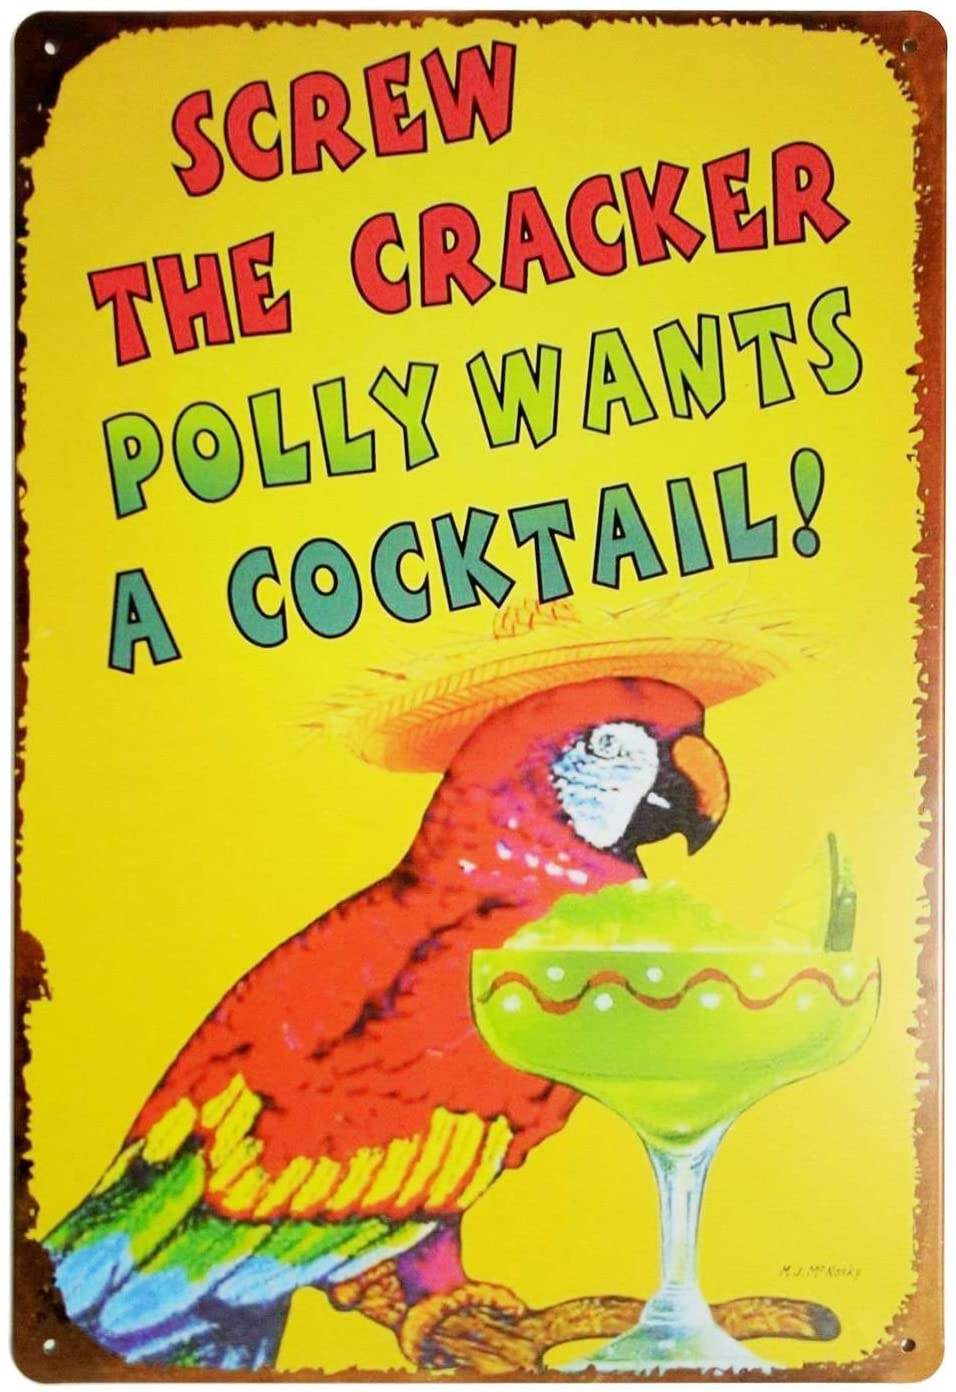 MAIYUAN Screw The Cracker Polly Wants a Cocktail Funny Metal Tin Sign for Wall Decor Craft 12 x 8 Inches